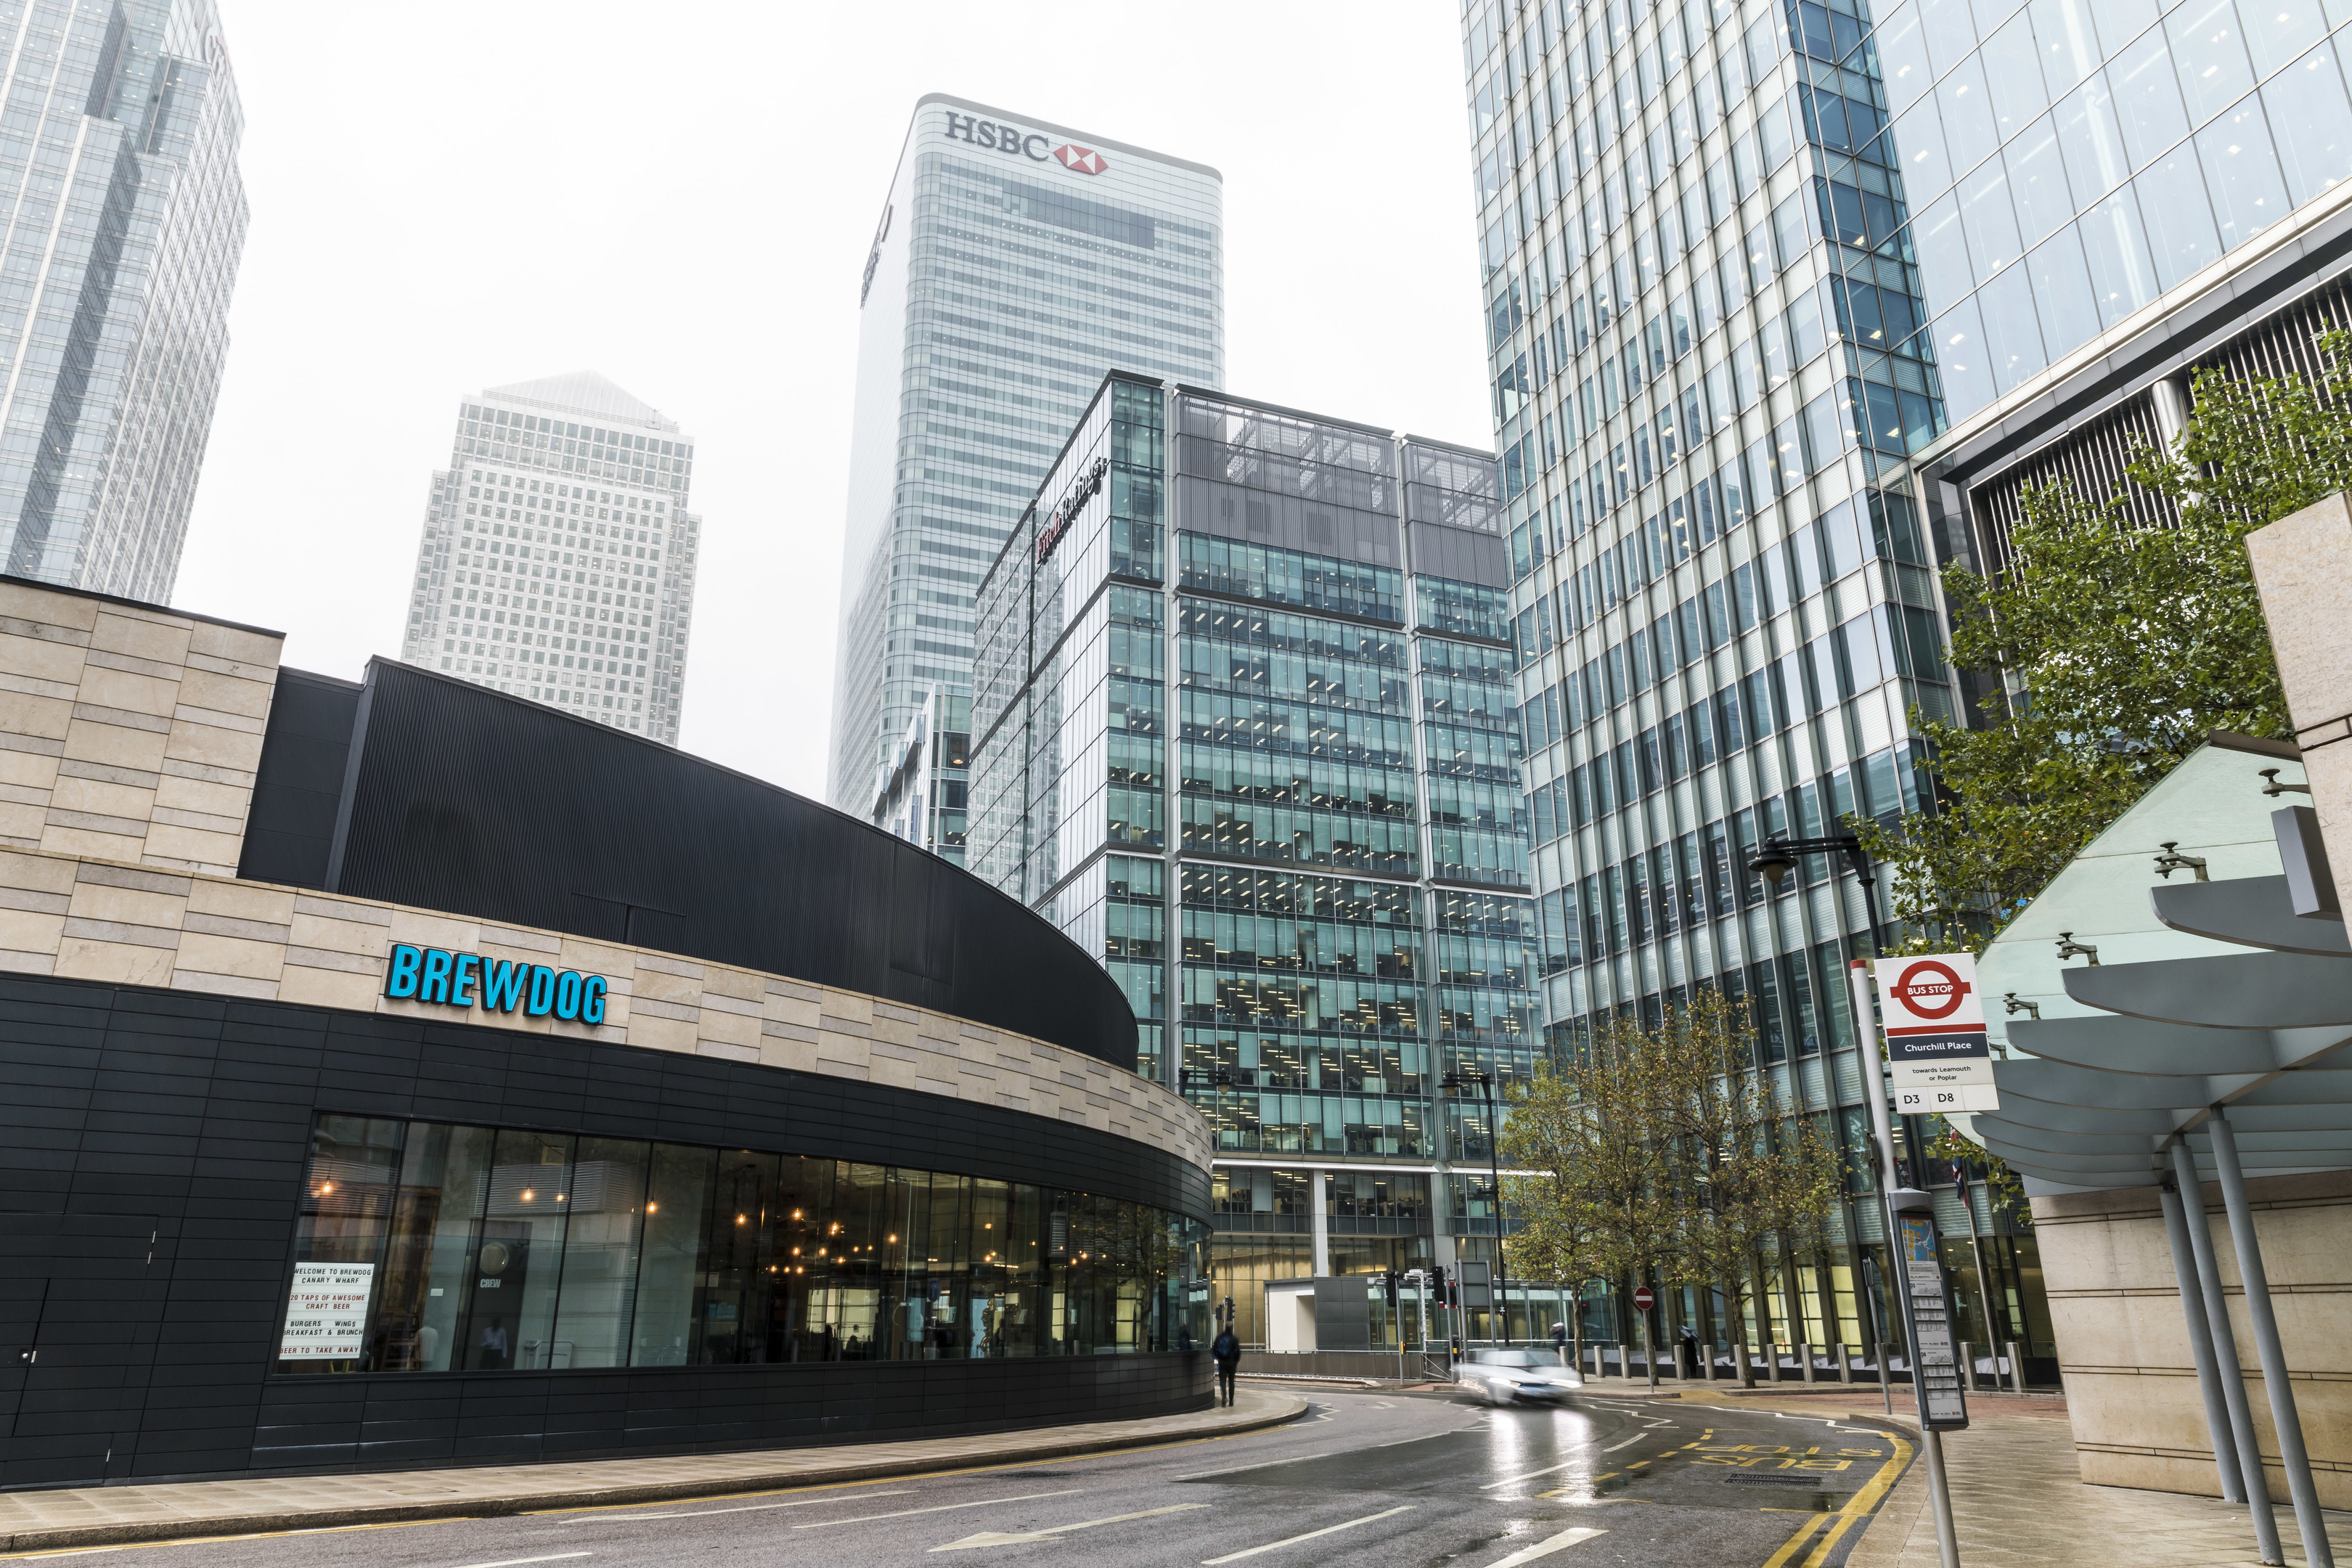 BrewDog is expanding its network of UK bars with the launch of its first bar in the financial district of Canary Wharf